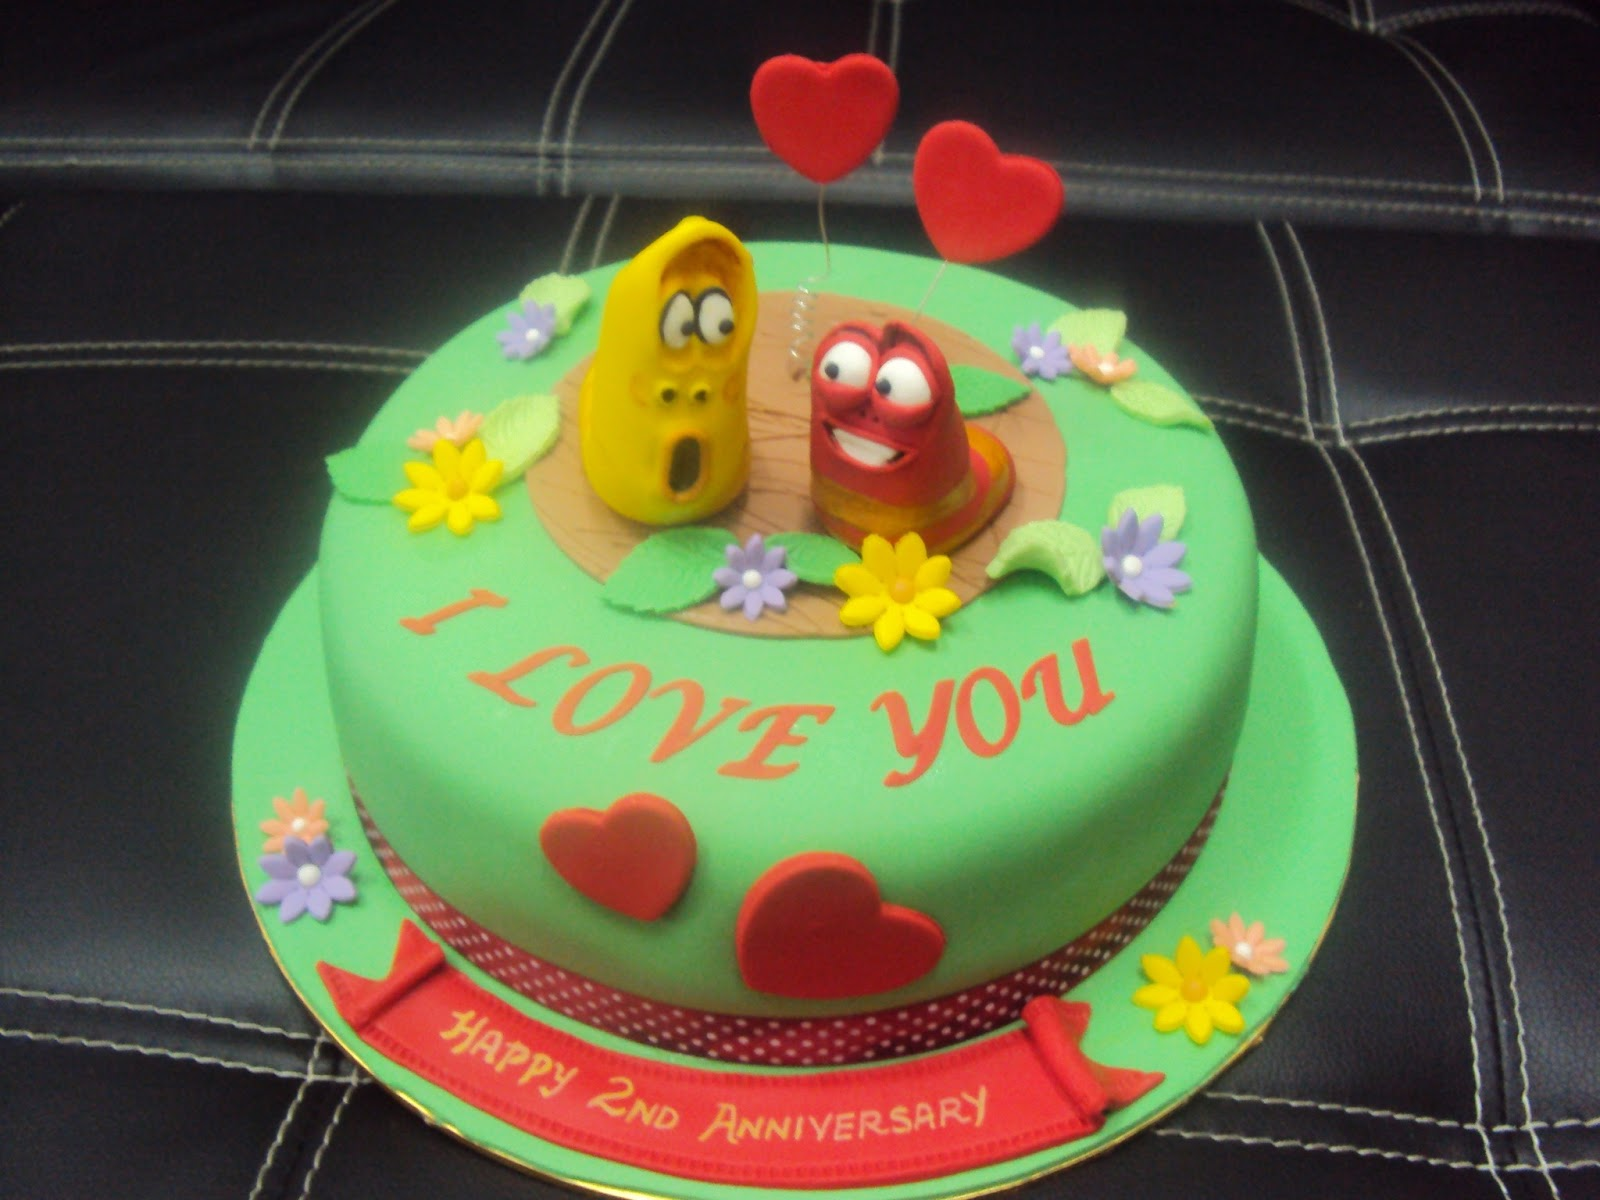 L Mis Cakes Amp Cupcakes Ipoh Contact 012 5991233